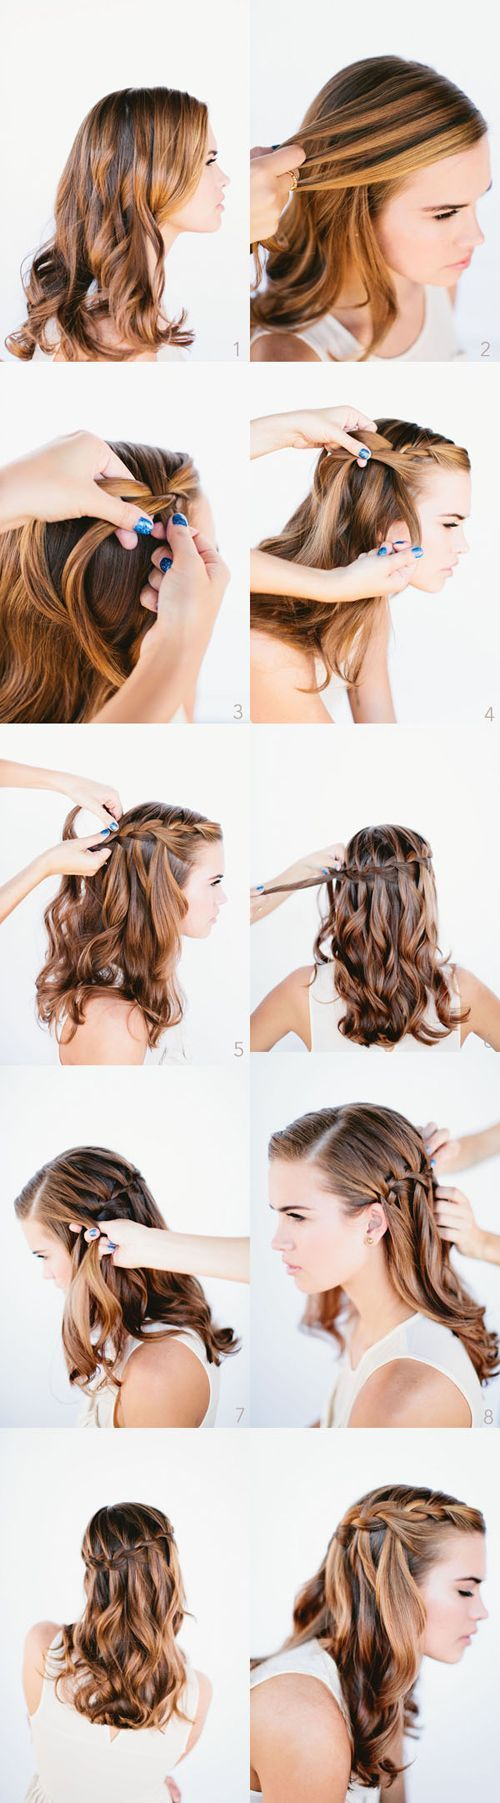 braided hairstyles that will look amazing with your prom dress